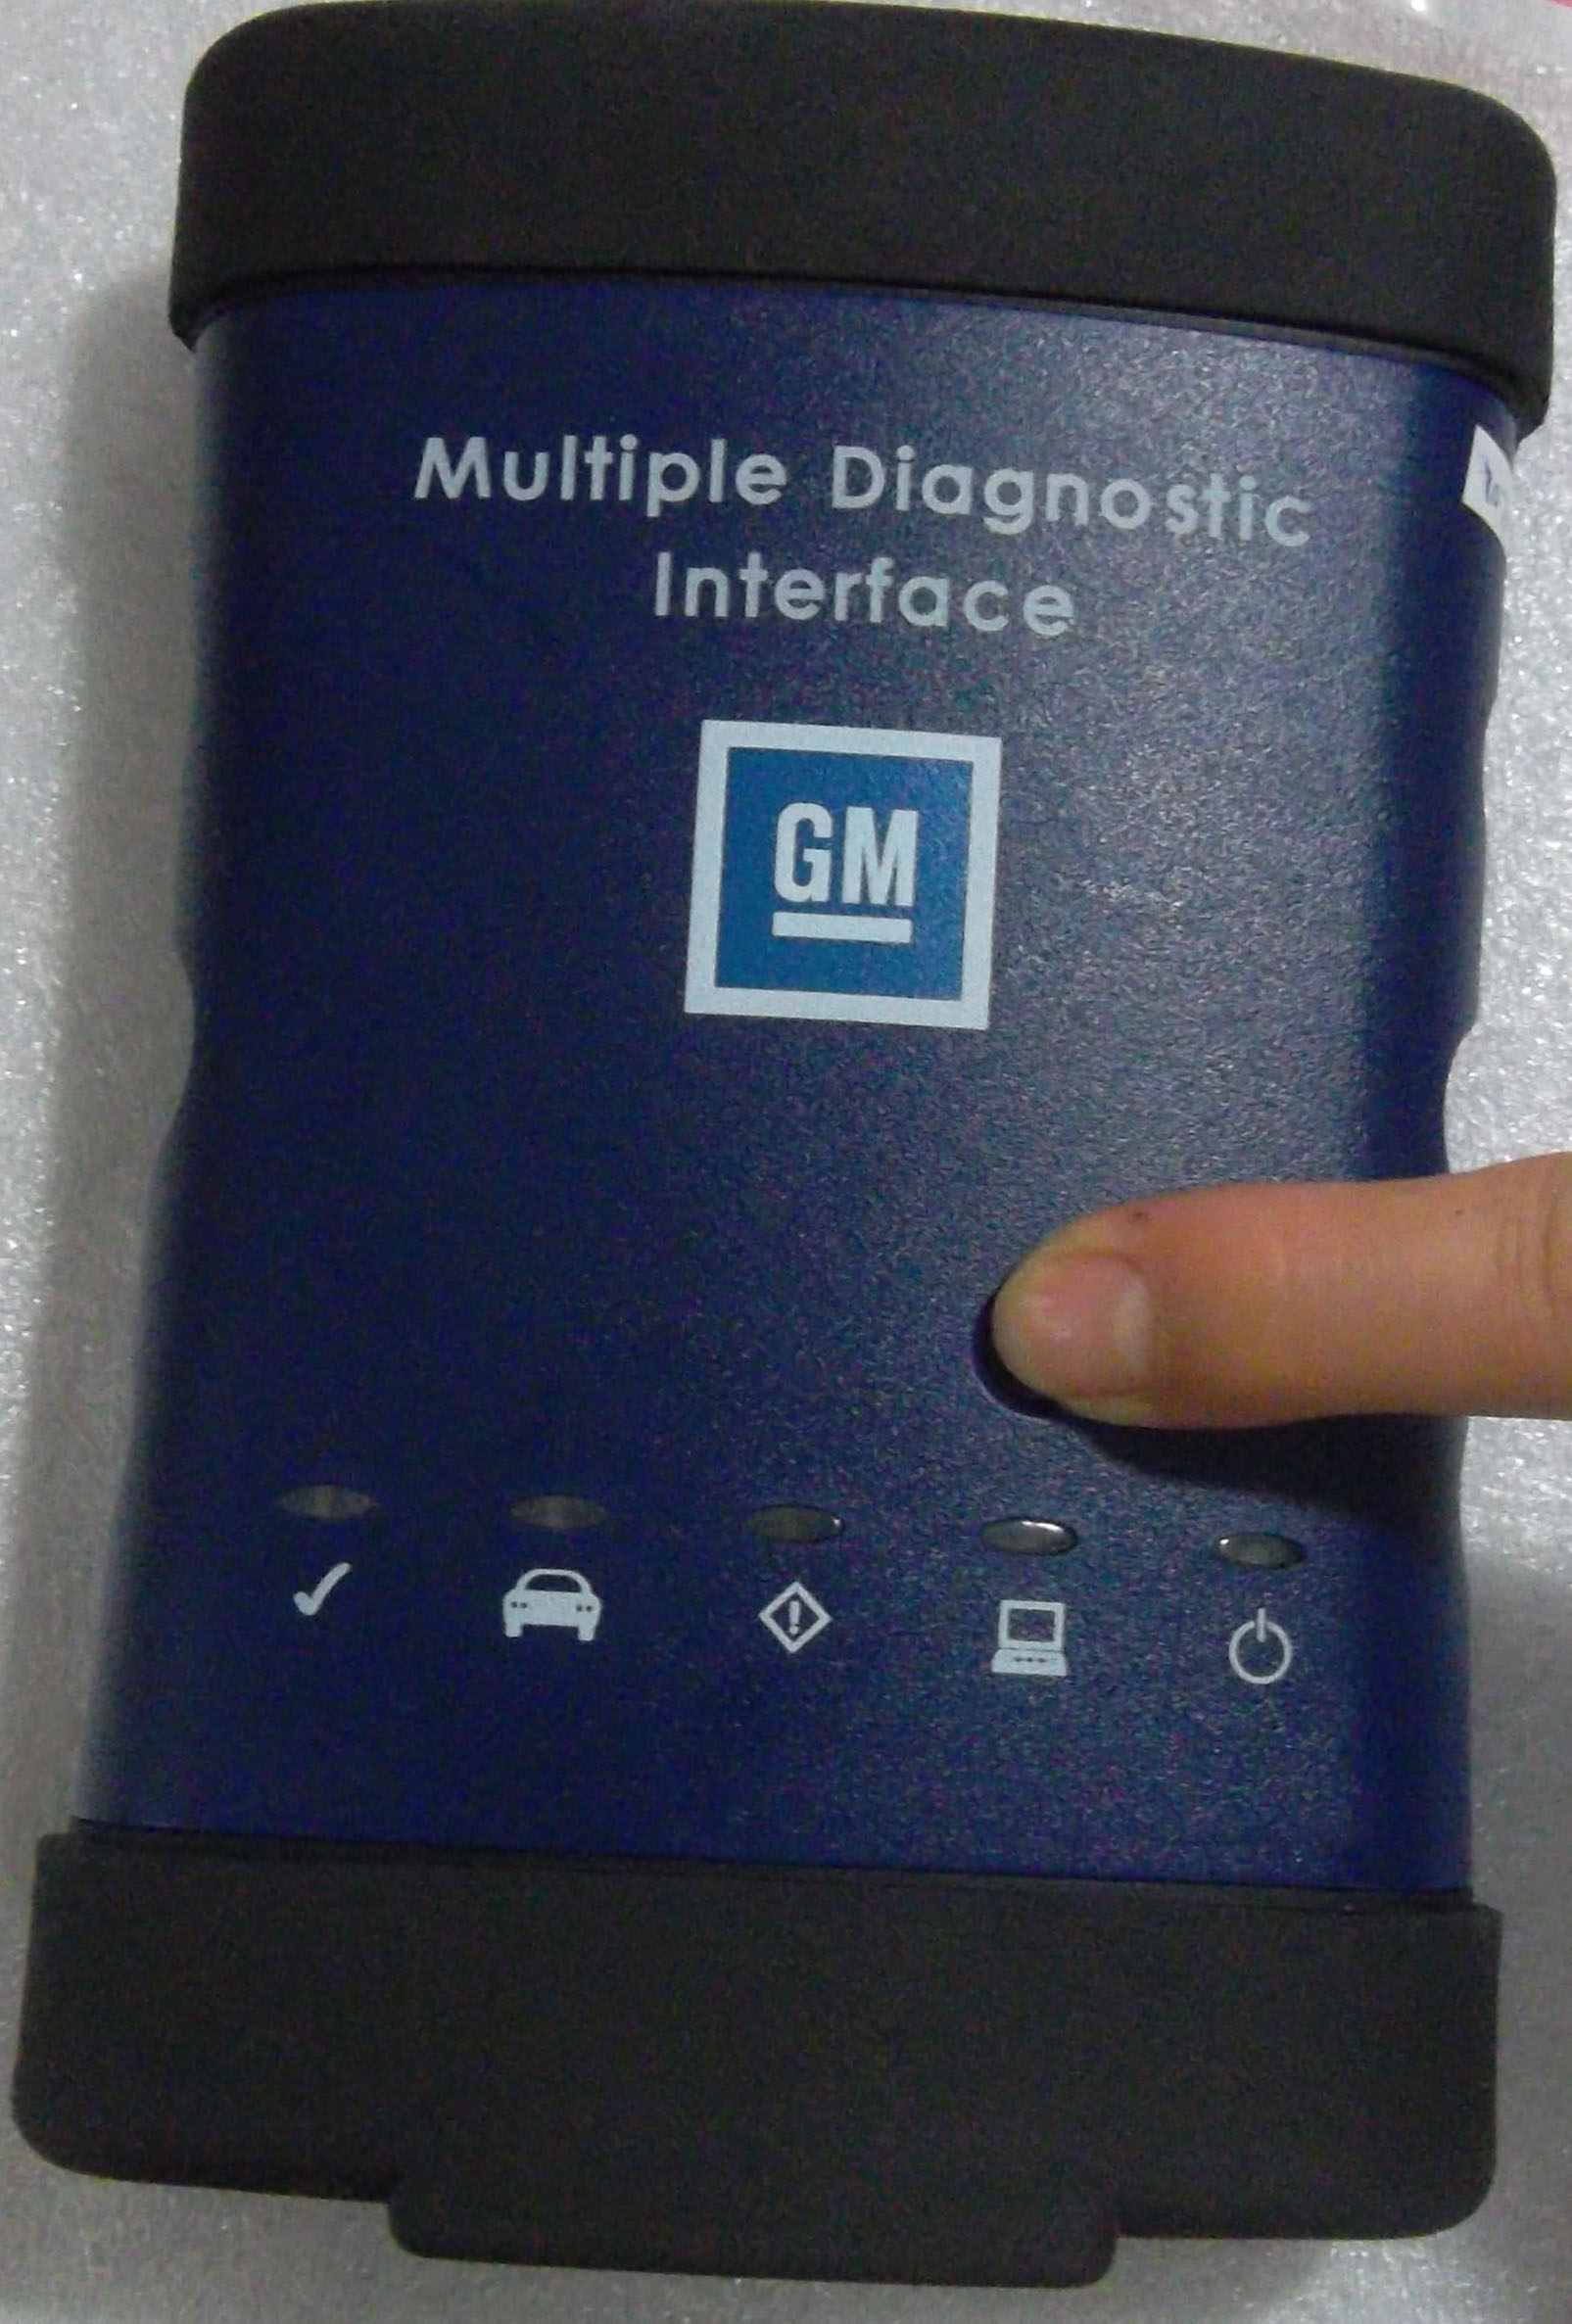 gm mdi gds wifi install user manual rh cardiagtool co uk GM MDI Requirements GM MDI On eBay